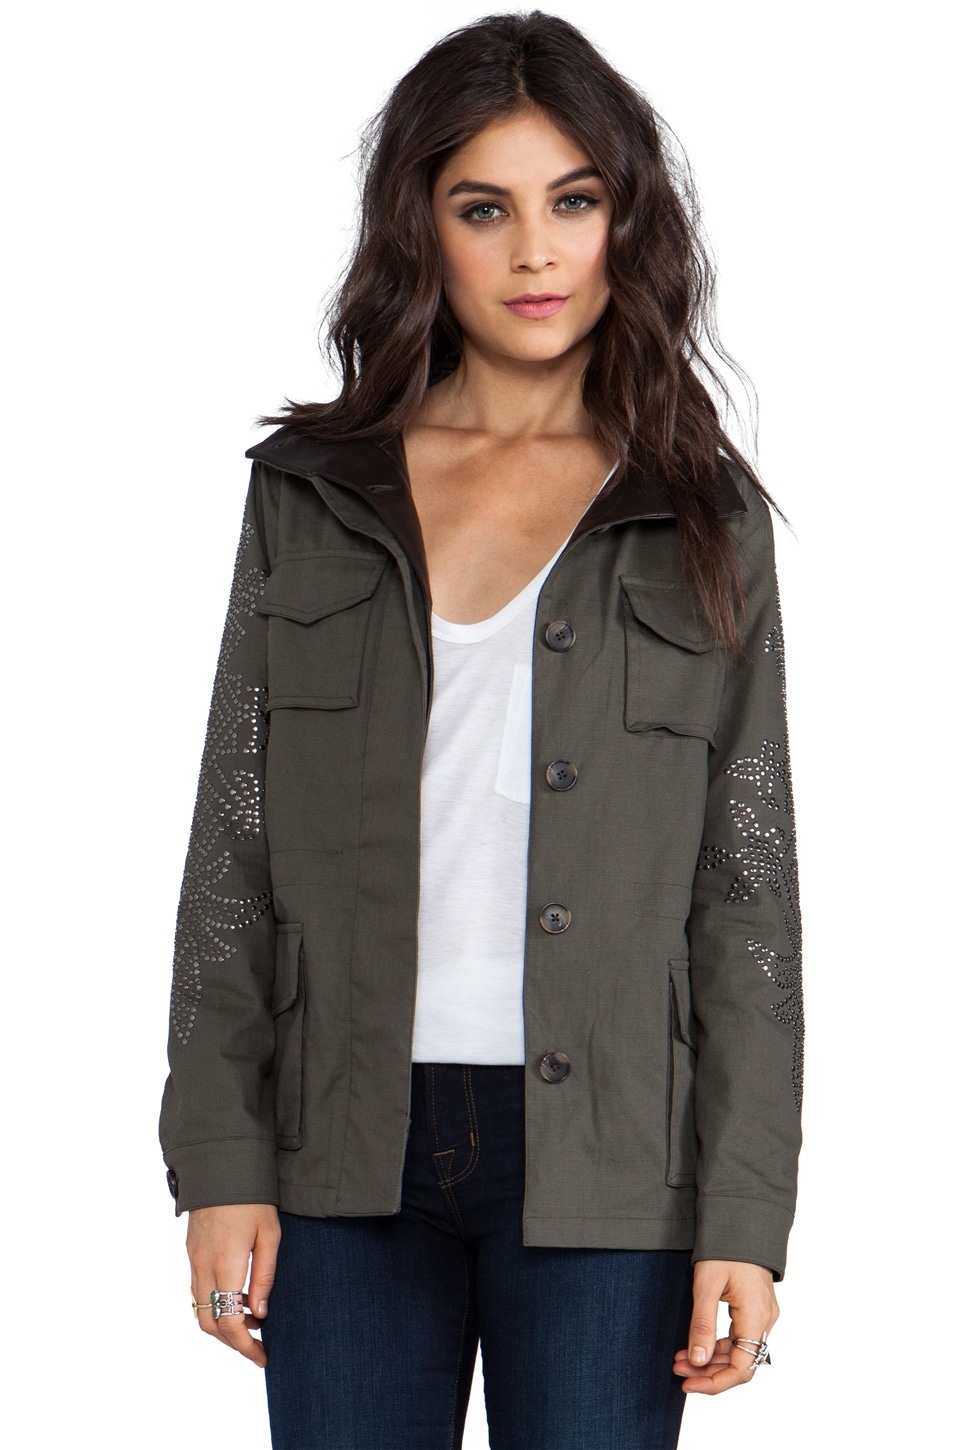 Haute Hippie Washed Ribstop Jacket with Studs in Military